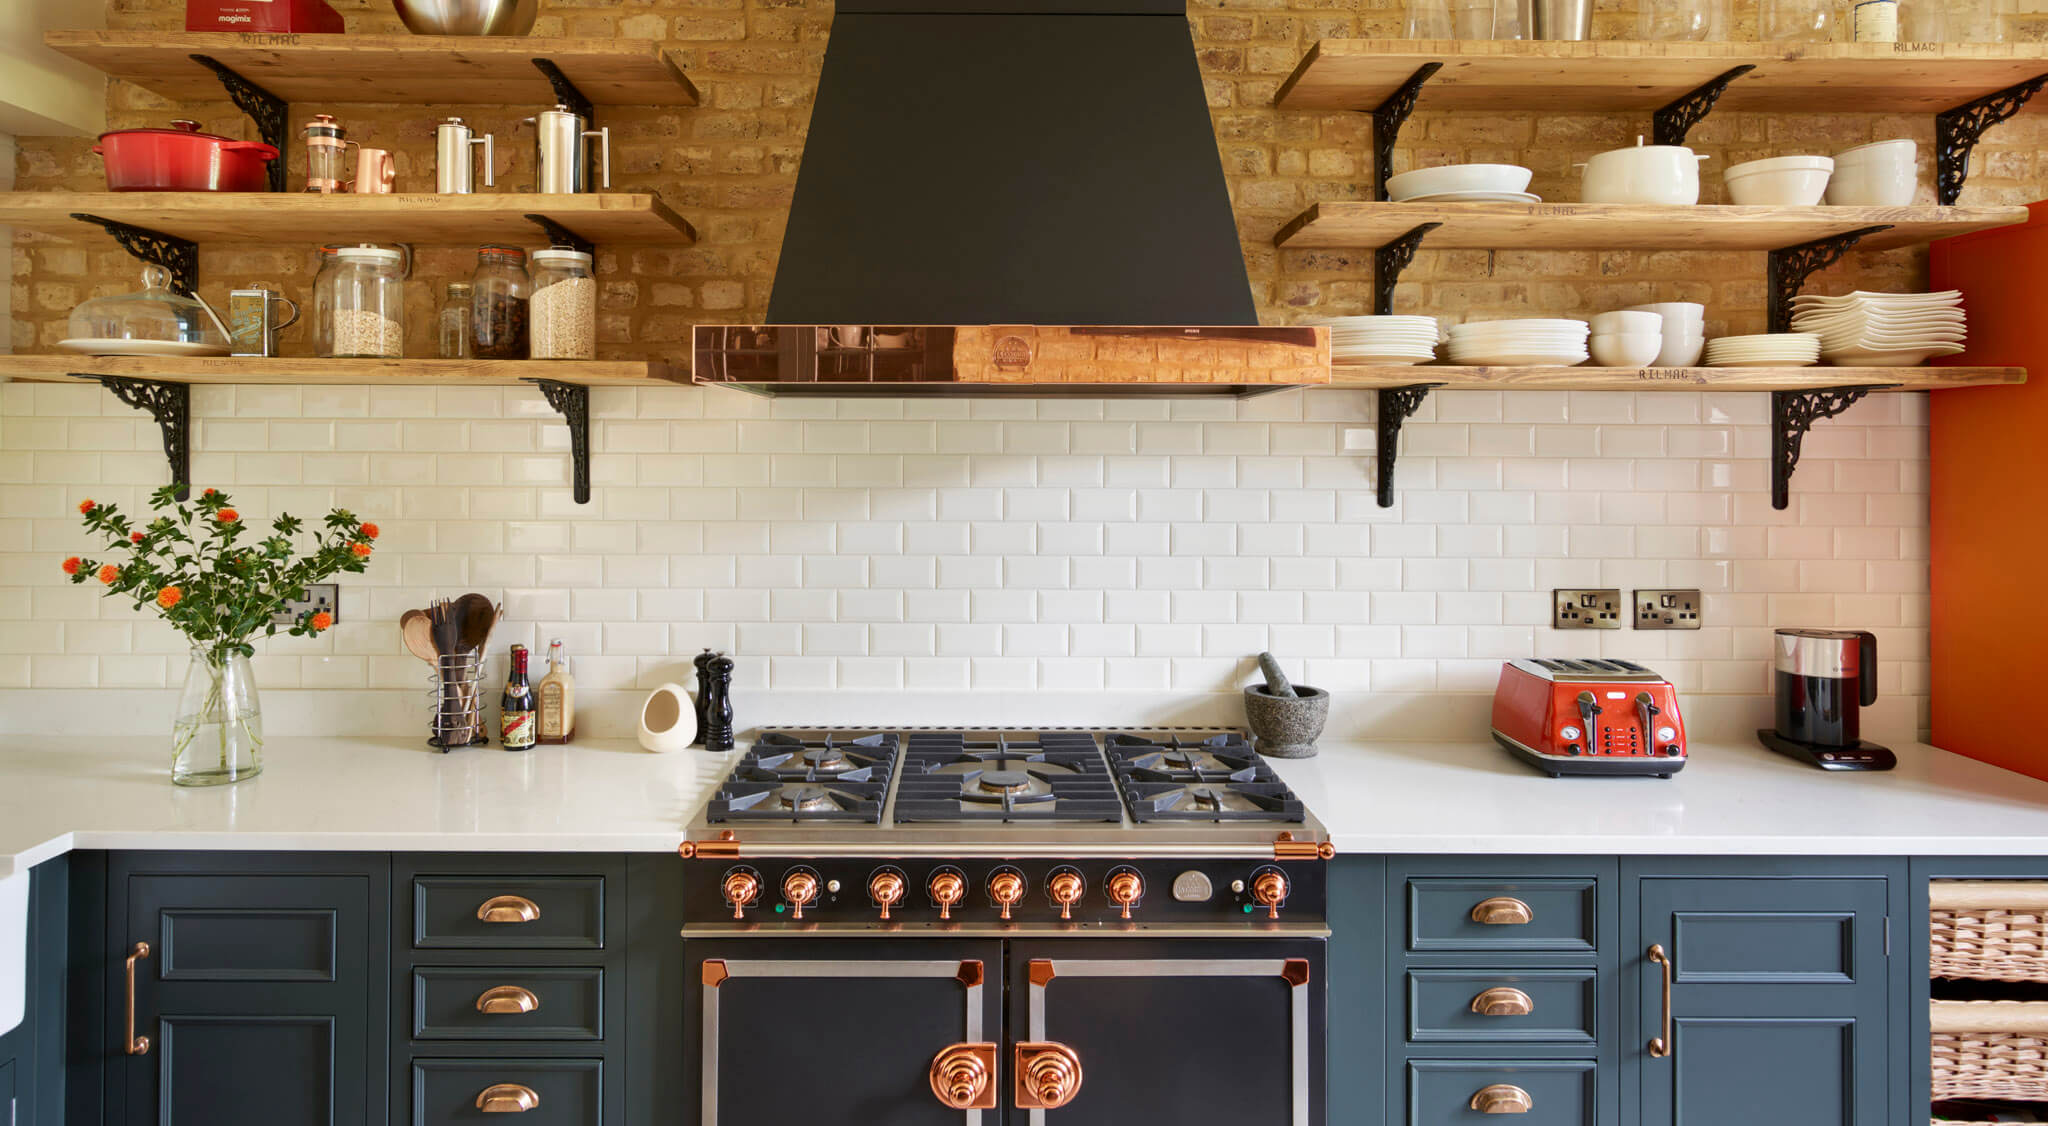 Original Kitchen With Copper Accents